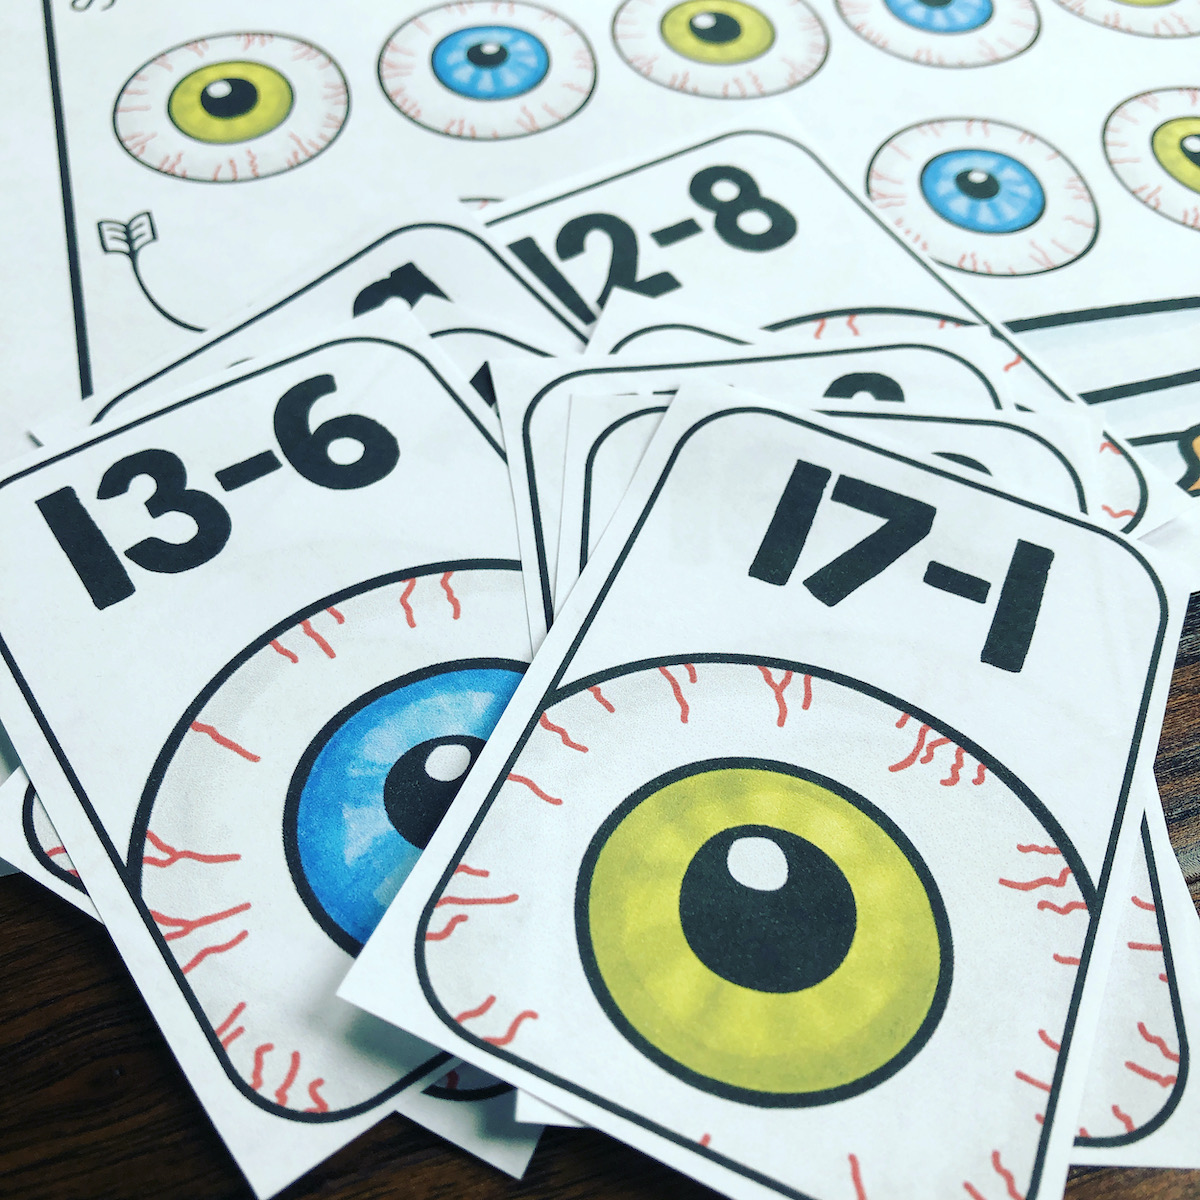 These creepy eyes make practicing math fun and spooky!